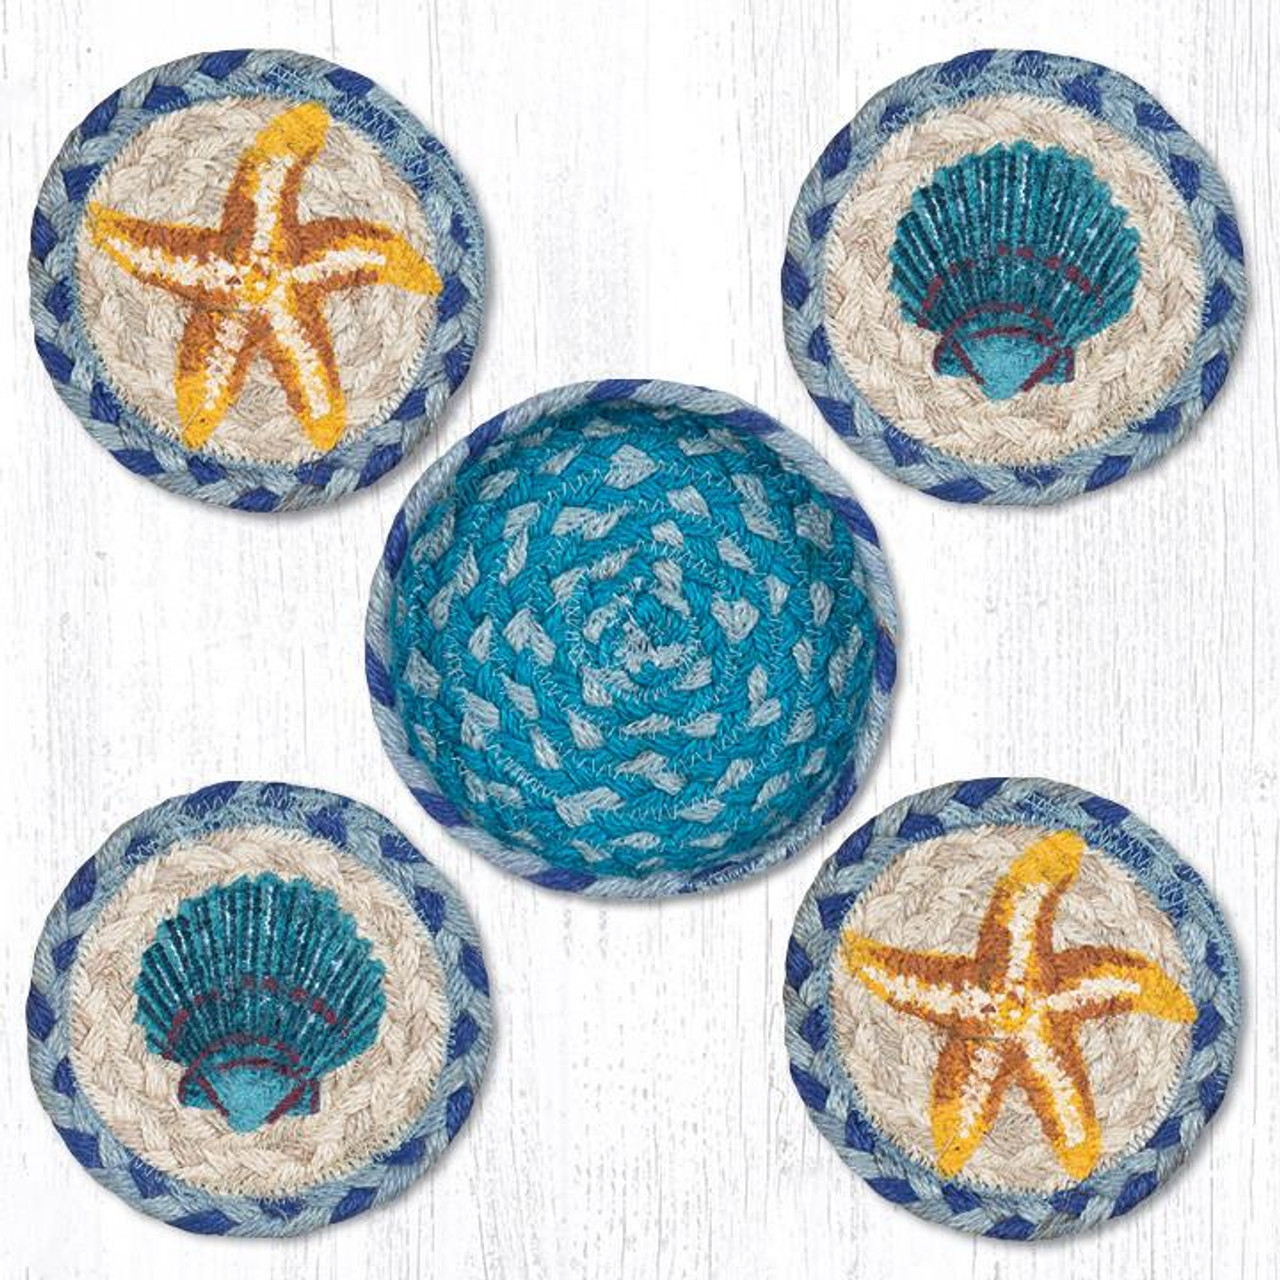 Starfish Scallop Teal Natural Set Or 4 Braided Coasters In Jute Basket 5 Cnb 378 Tropicalbreezedecor